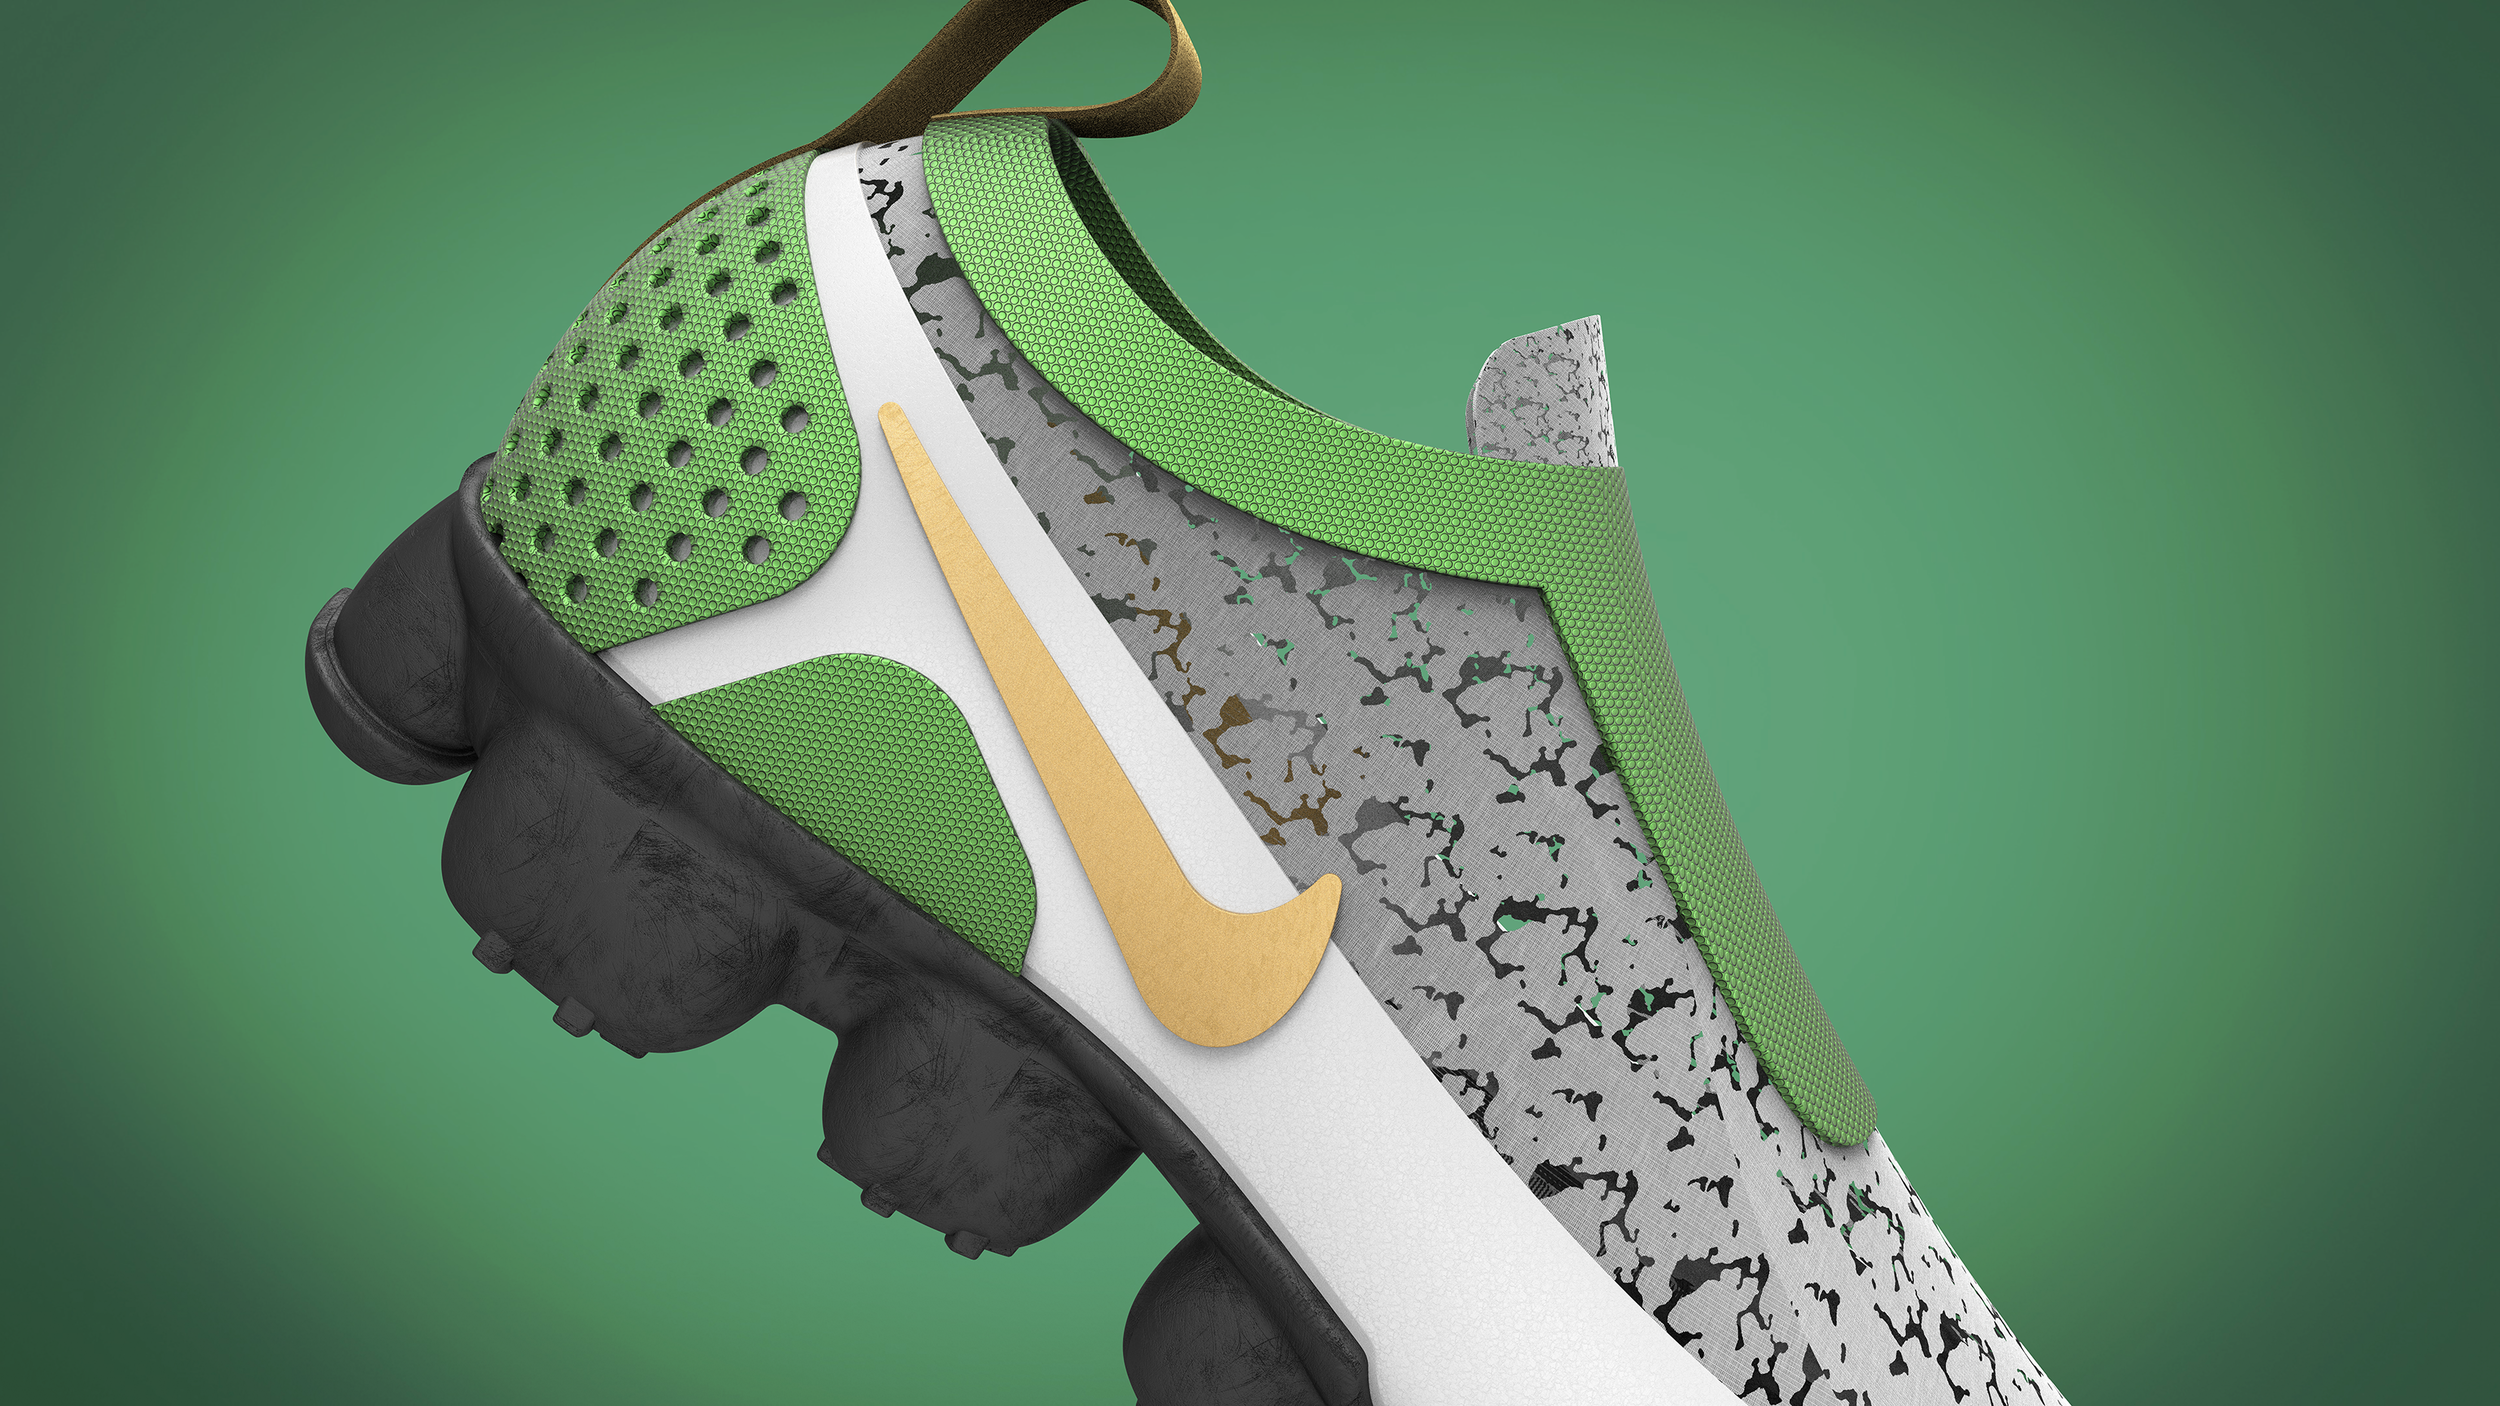 SHOE_02S.png